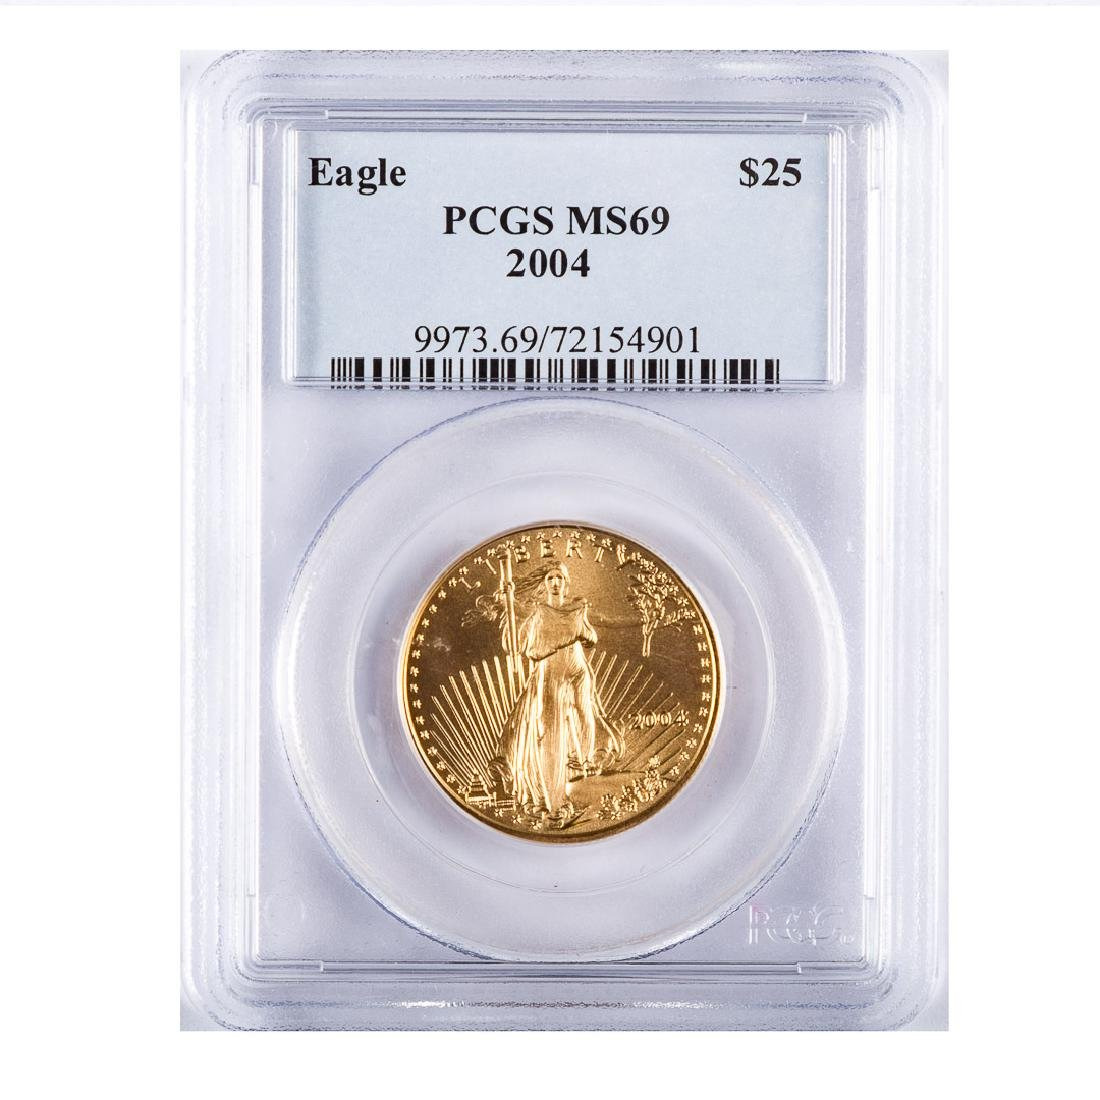 [US] 2004 US Gold $25 Eagle - 1/2 ounce PCGS MS69